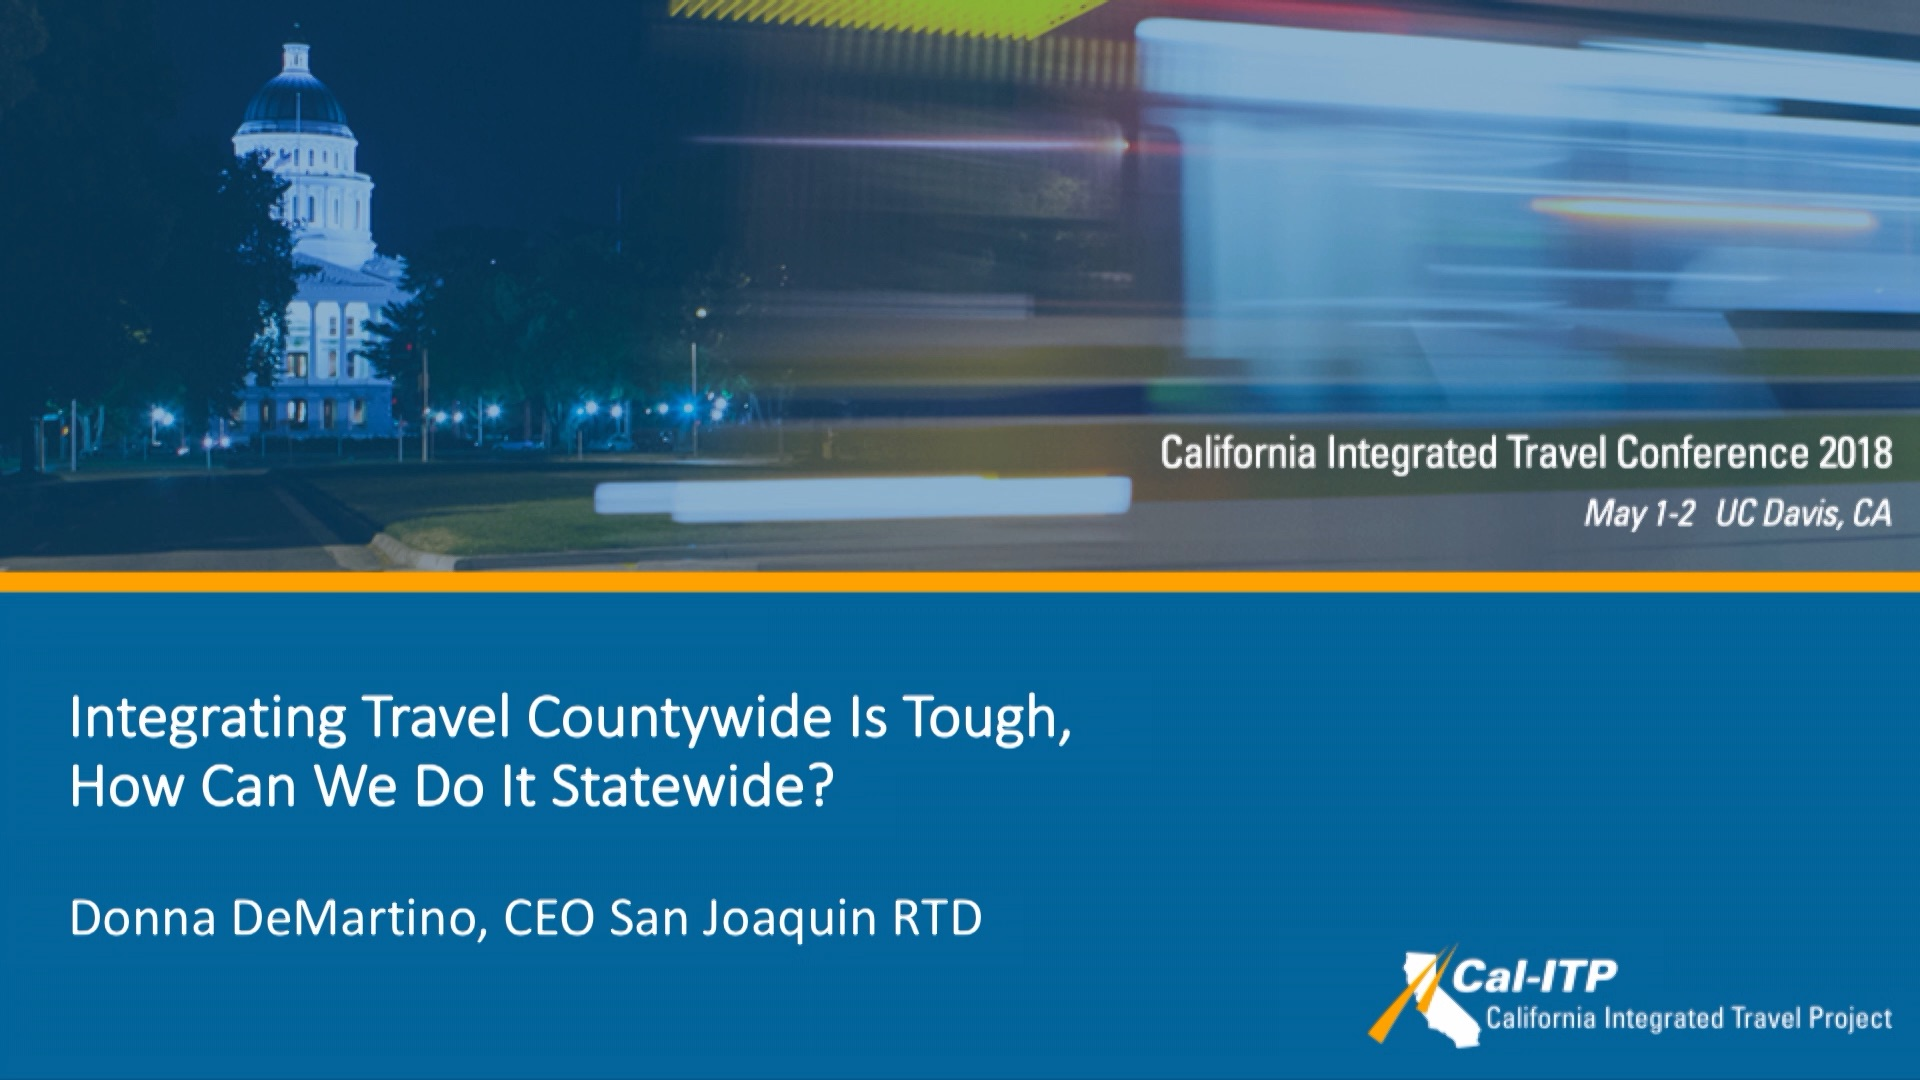 6. Integrating Travel Countywide is Tough